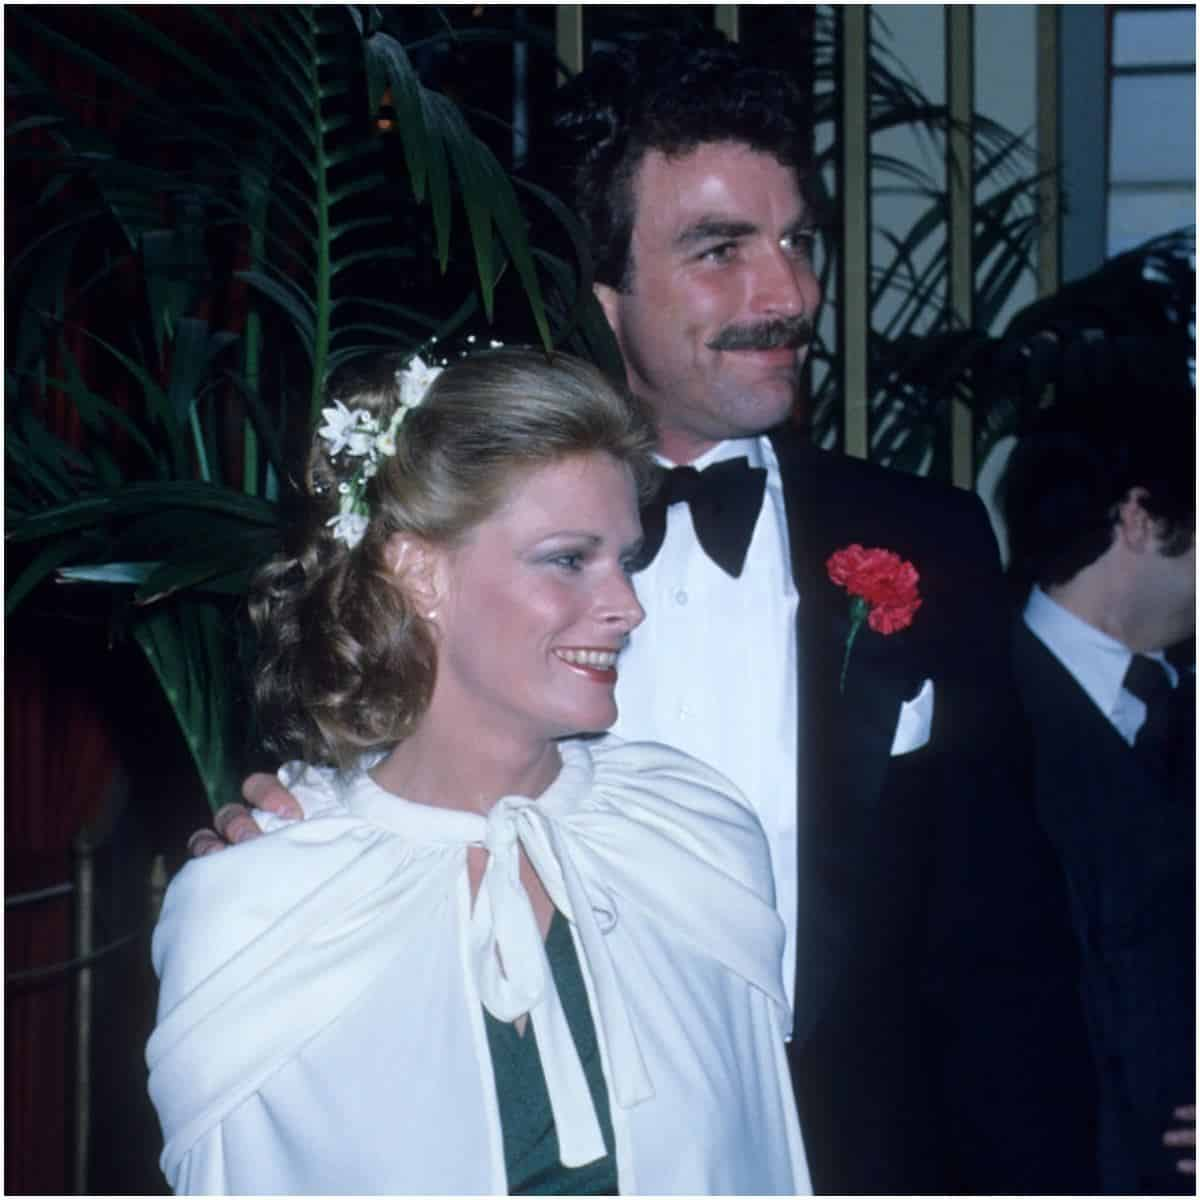 Tom Selleck and Jacqueline Ray